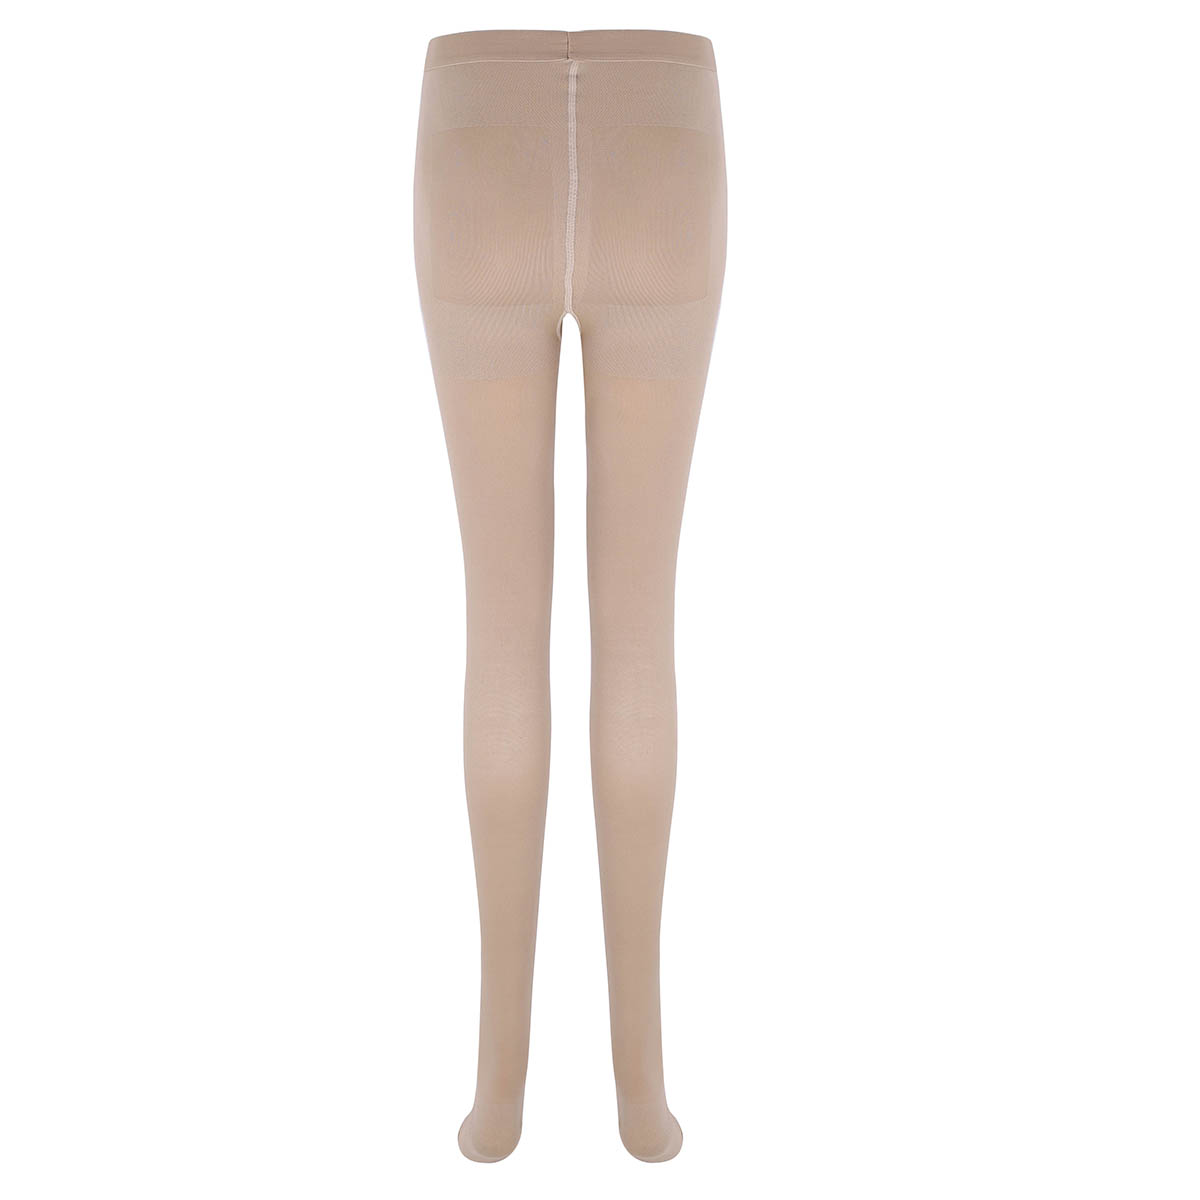 699d26c4f Detail Feedback Questions about Women Opaque Compression Stockings ...